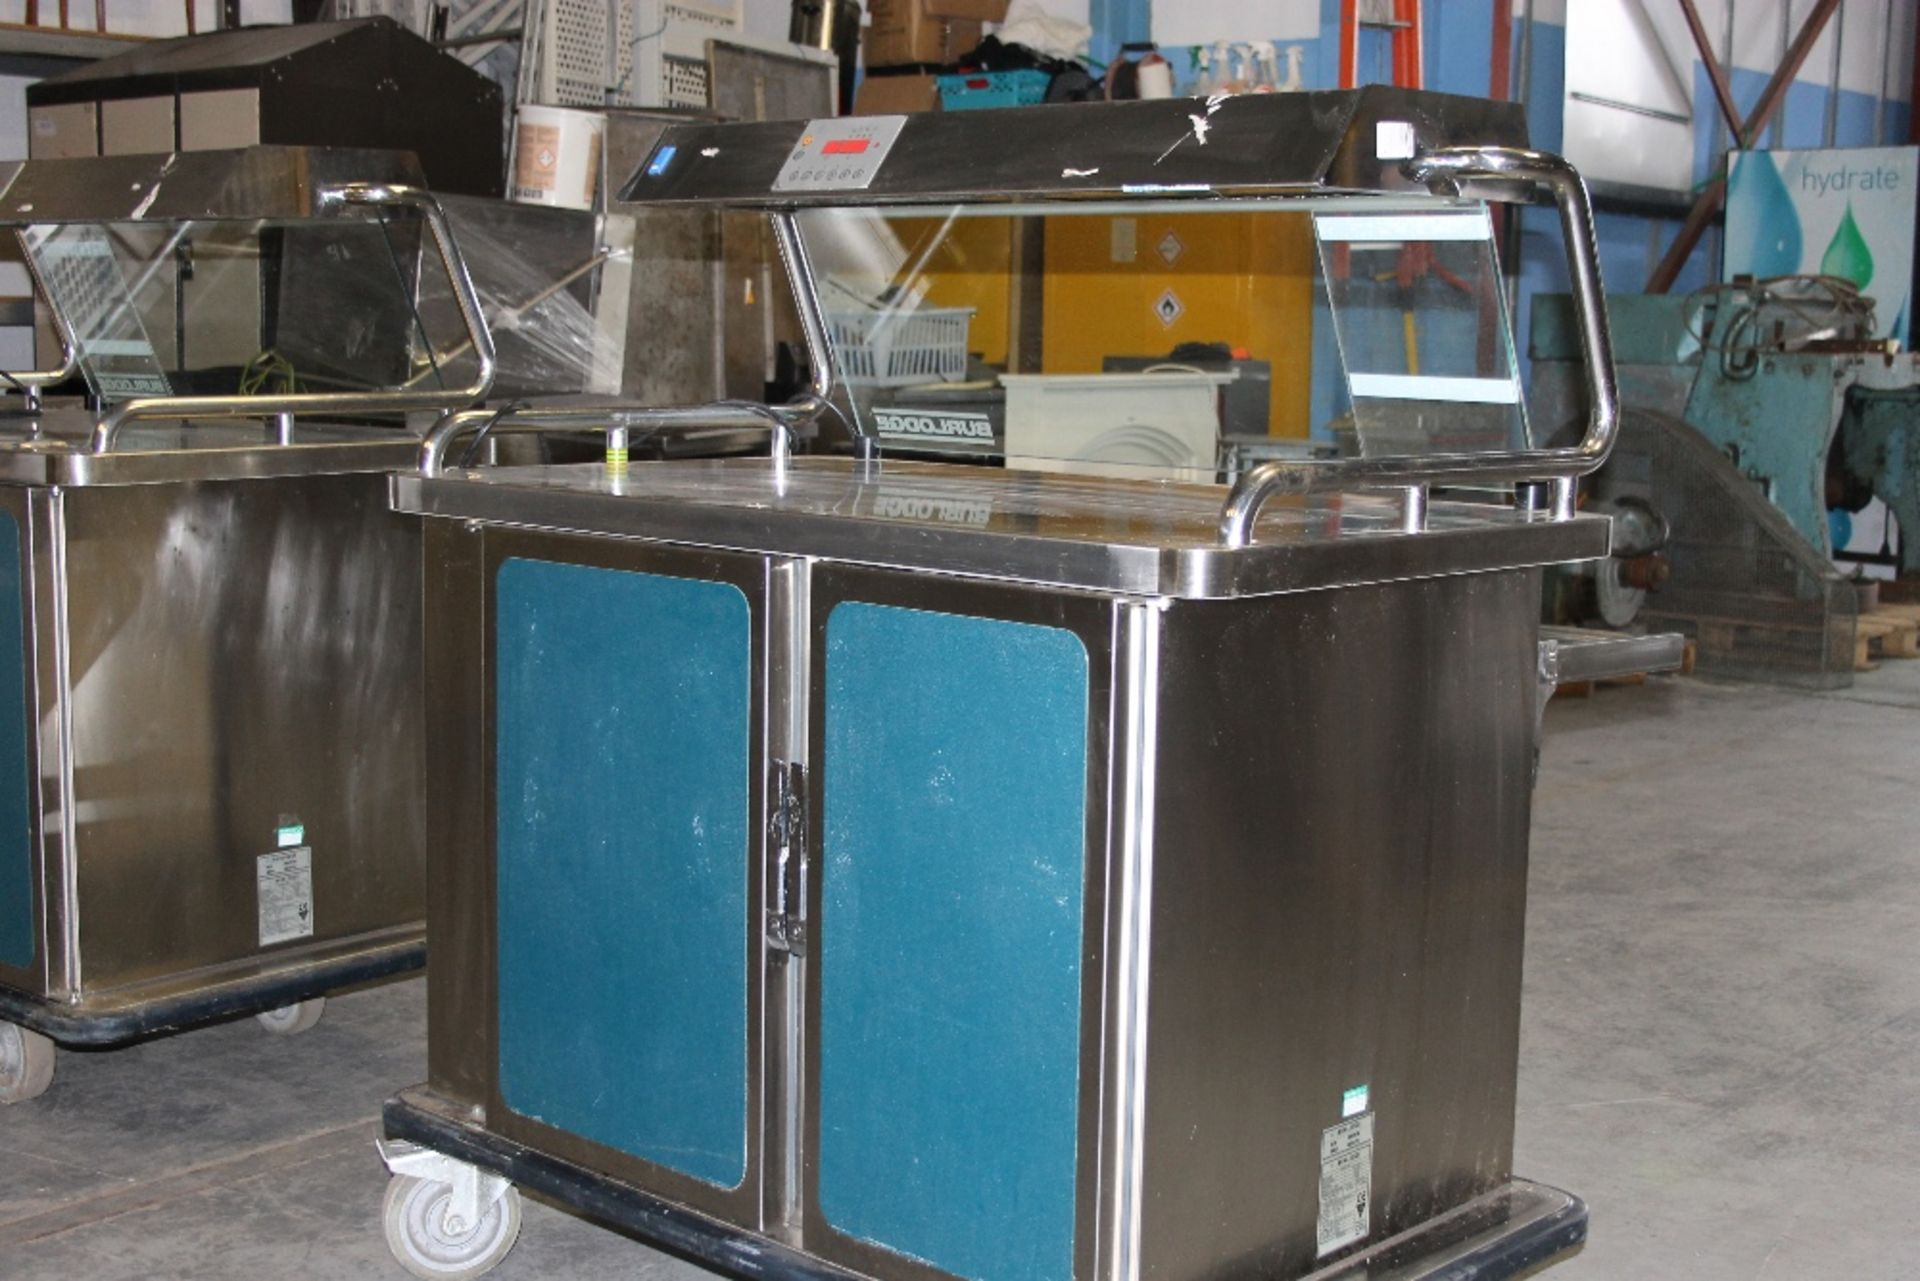 Lot 48 - Burlodge Multigen M22.100 Mobile Server with heated gantry and under tray storage to rear on one